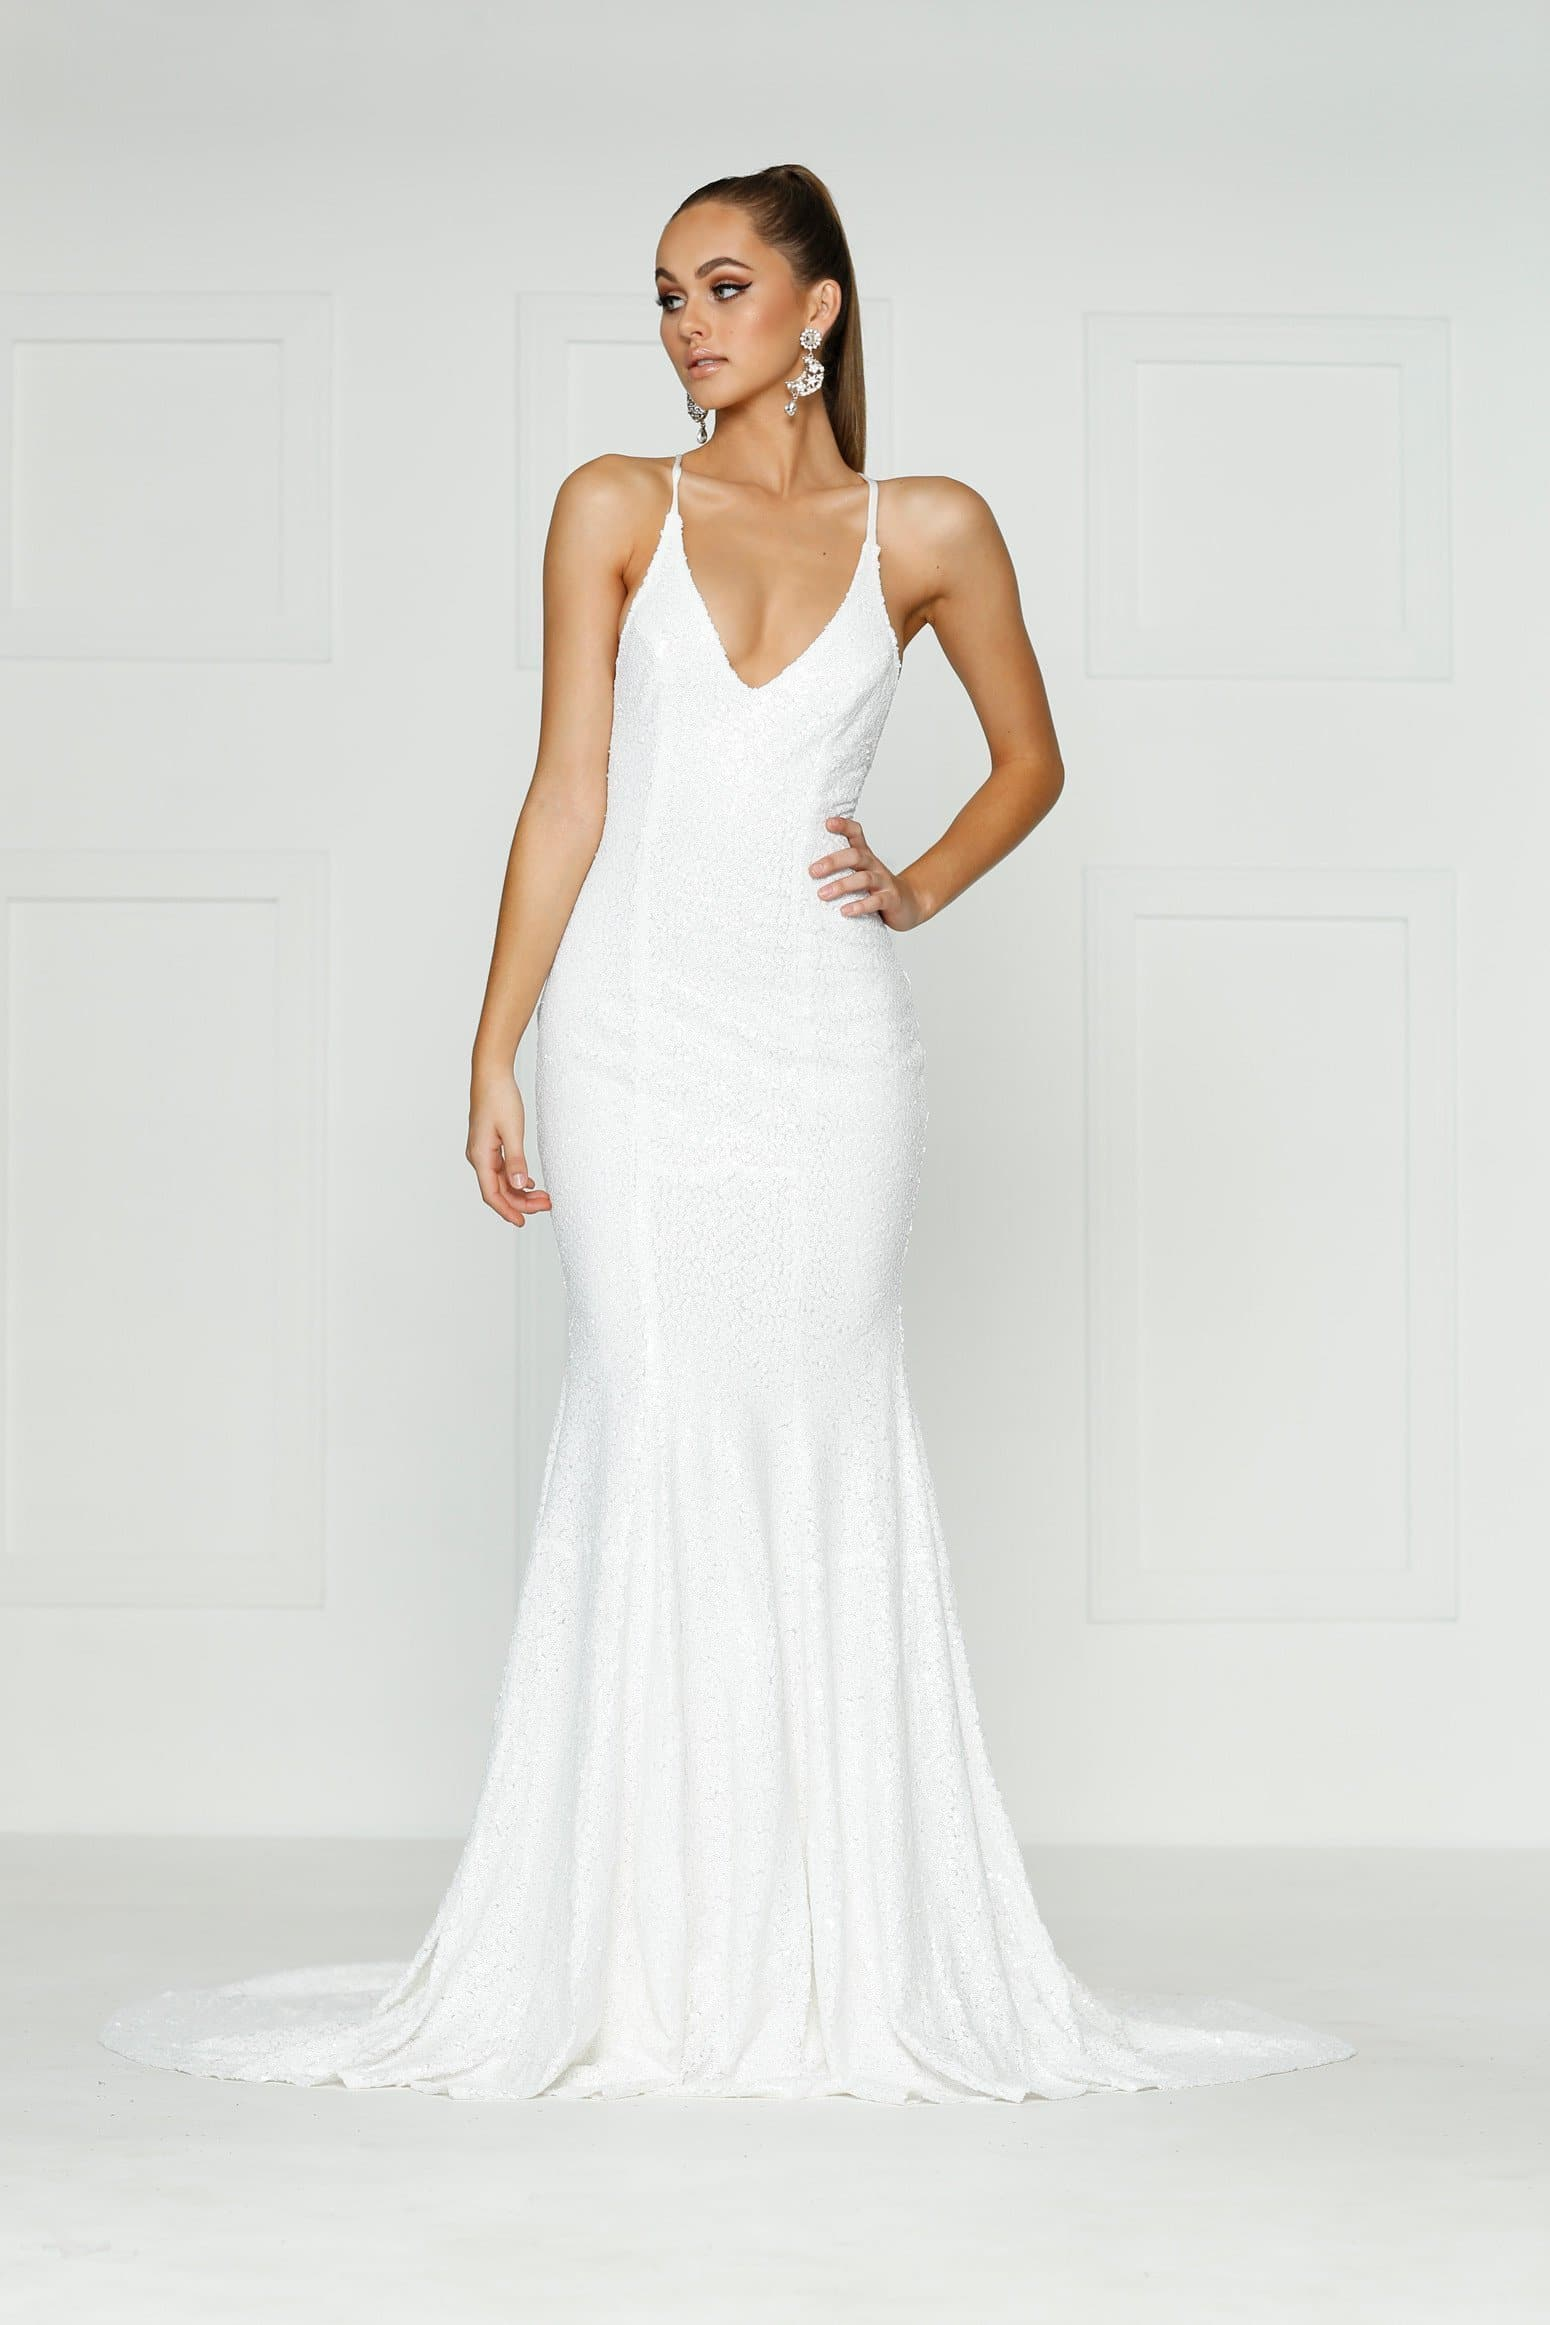 A&N Kendall - White Sequin Dress with Criss Cross Back and V Neck ...